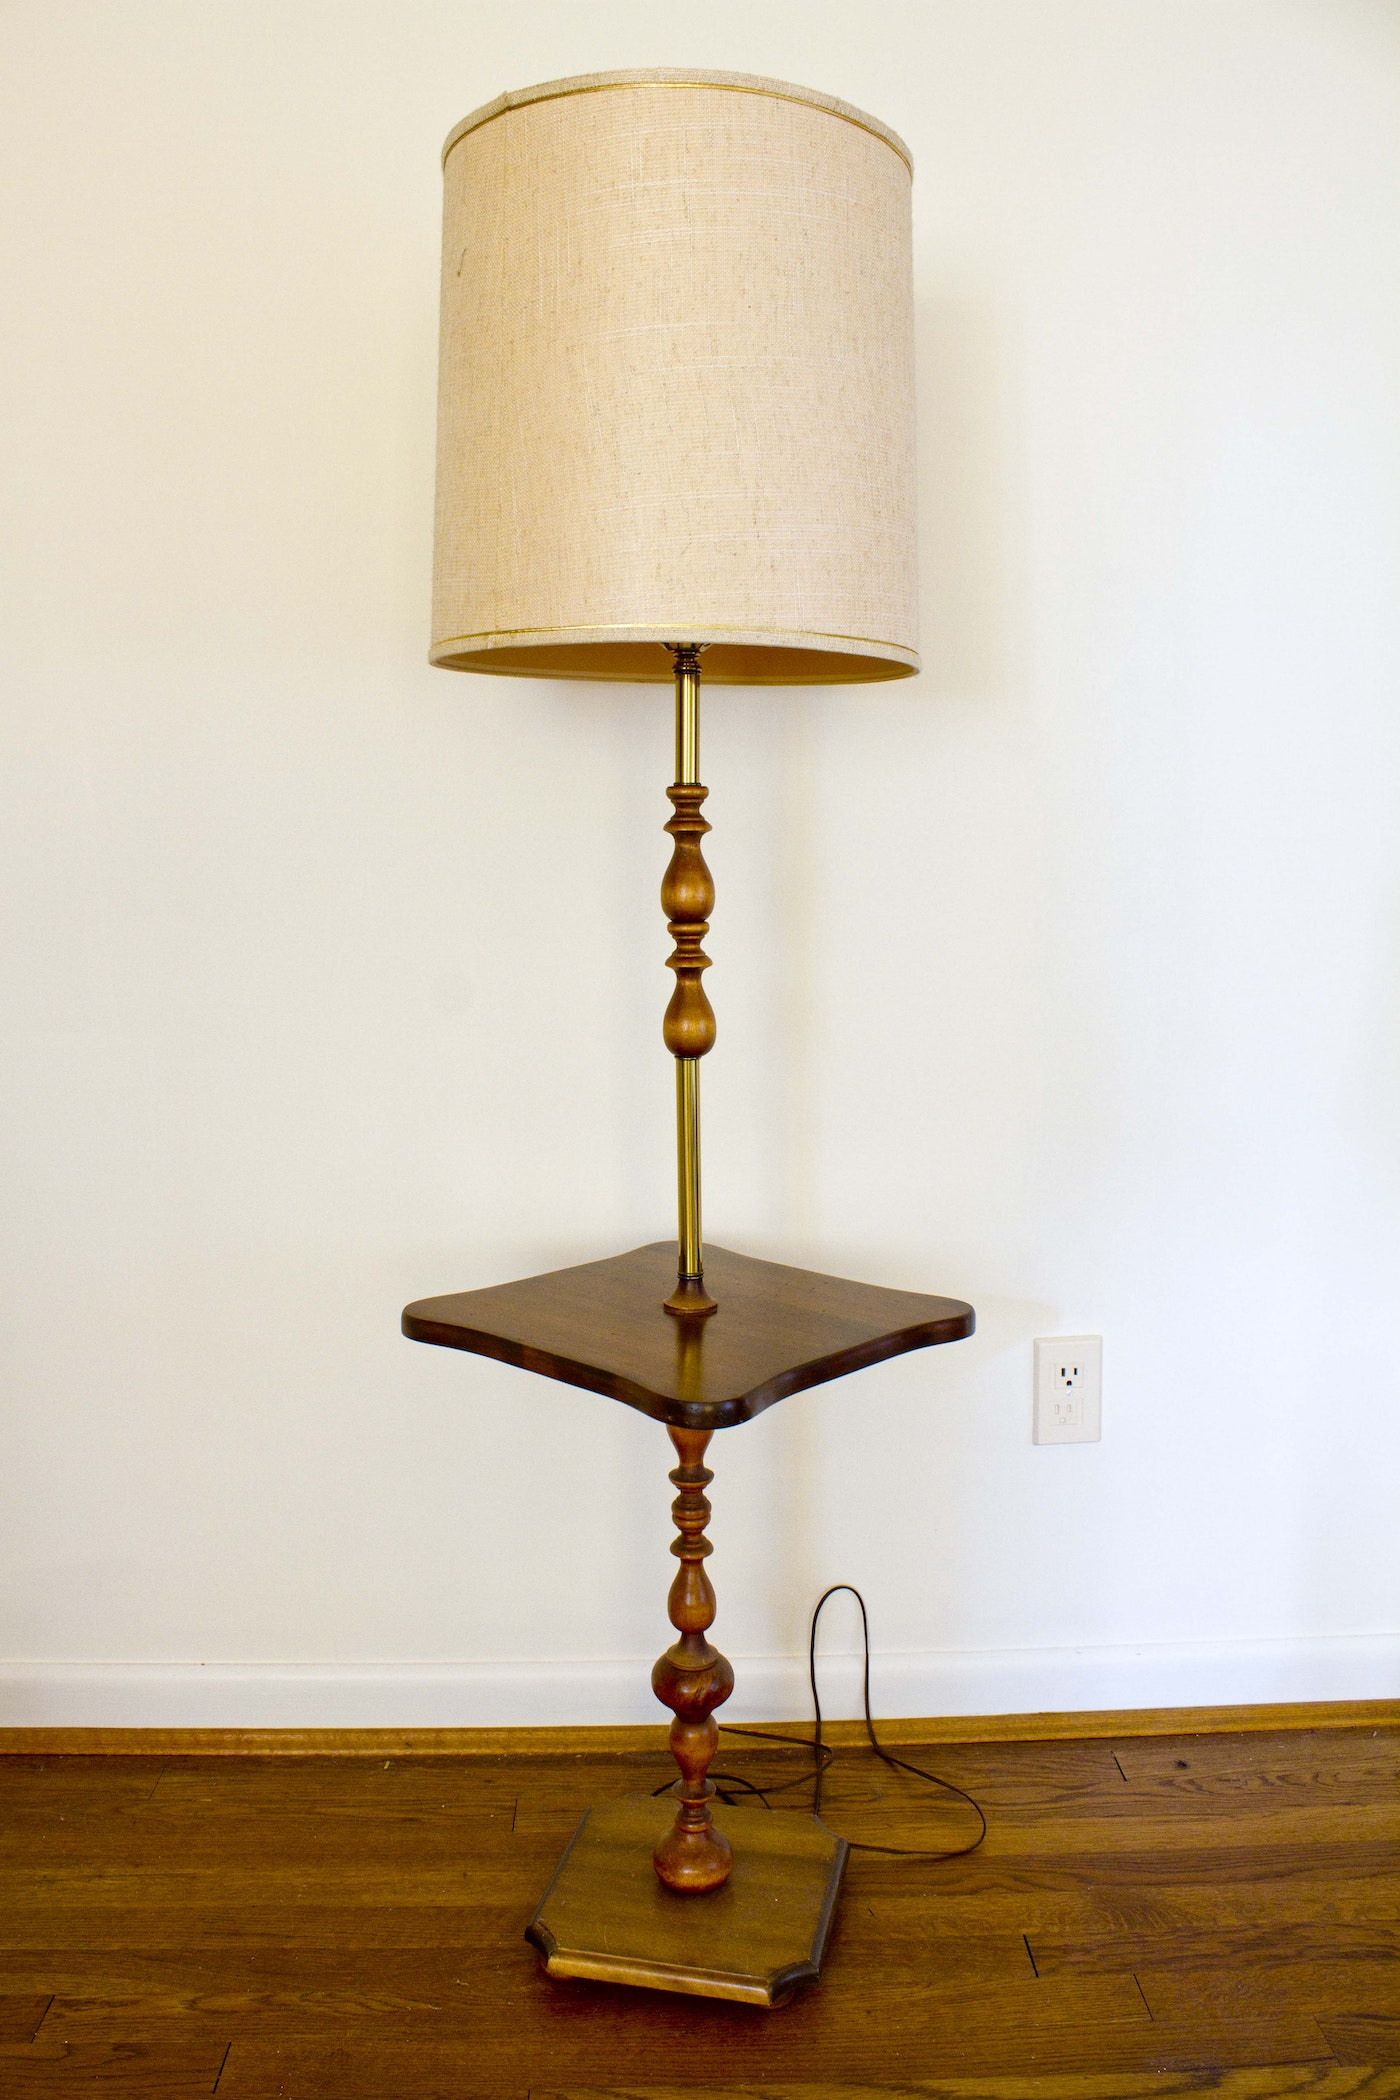 Vintage Floor Lamp with Tray Table | EBTH